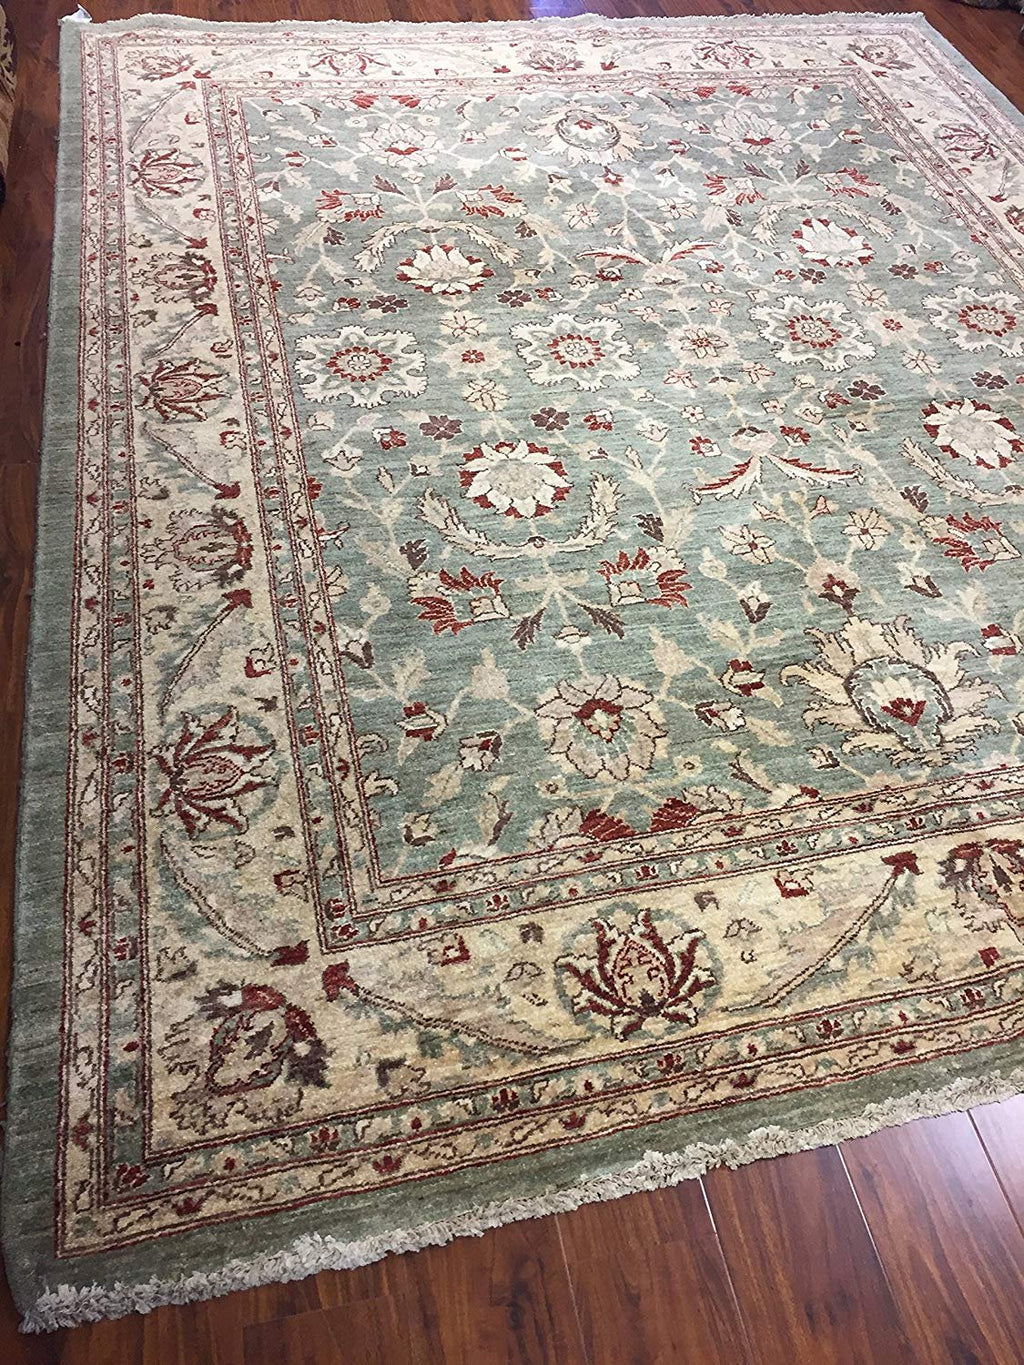 Authentic Handmade fine Pakistan Rug-Real Wool Allover Pattern-Green/Gold-(8 by 10.1 Feet)